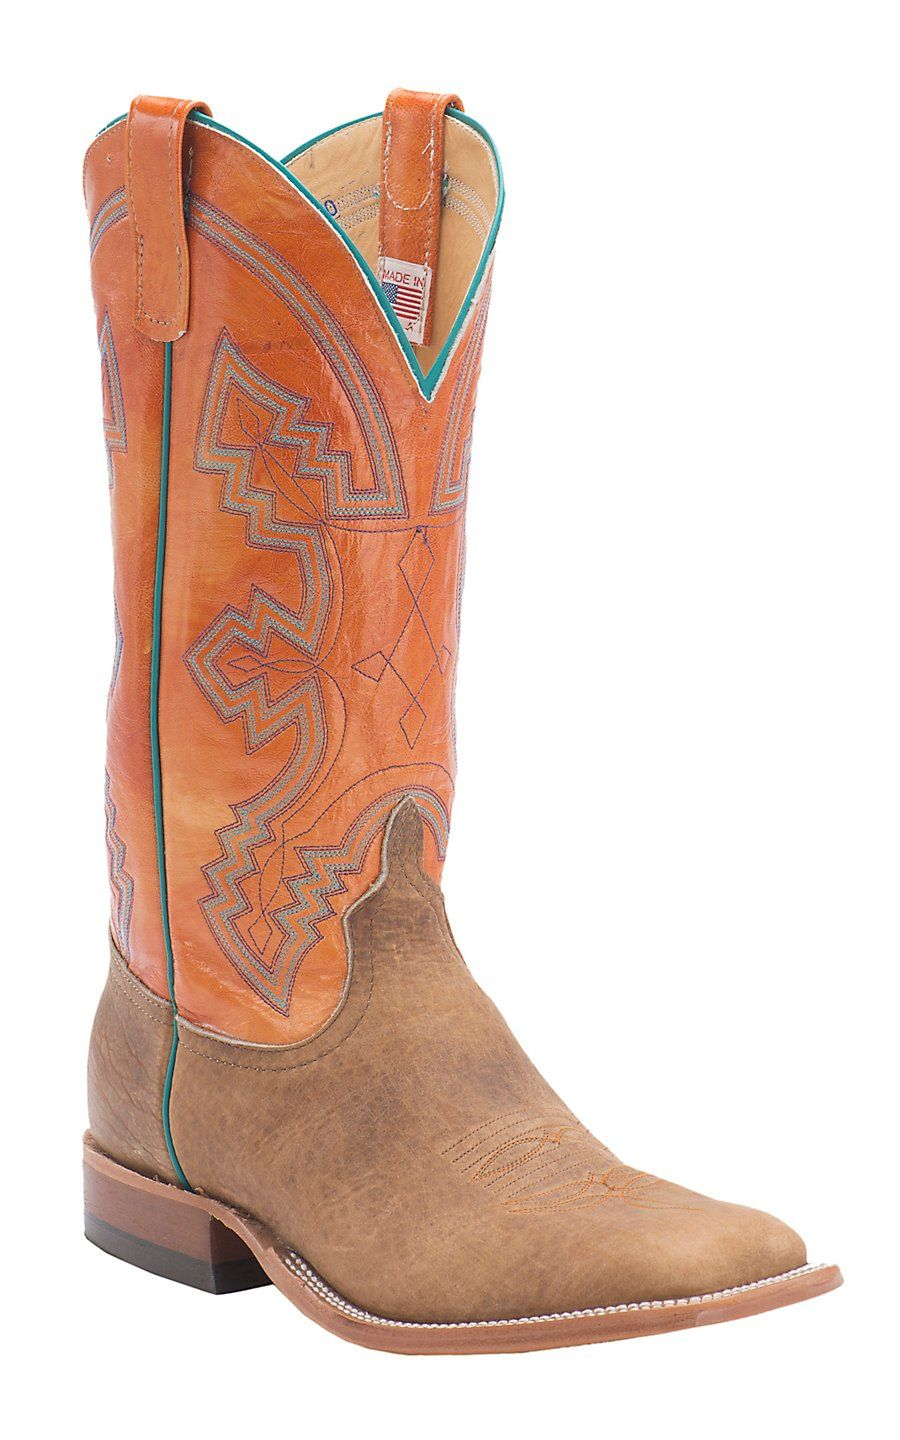 71617324f8f Anderson Bean® Men's Distressed American Tan Bison with Tangerine ...